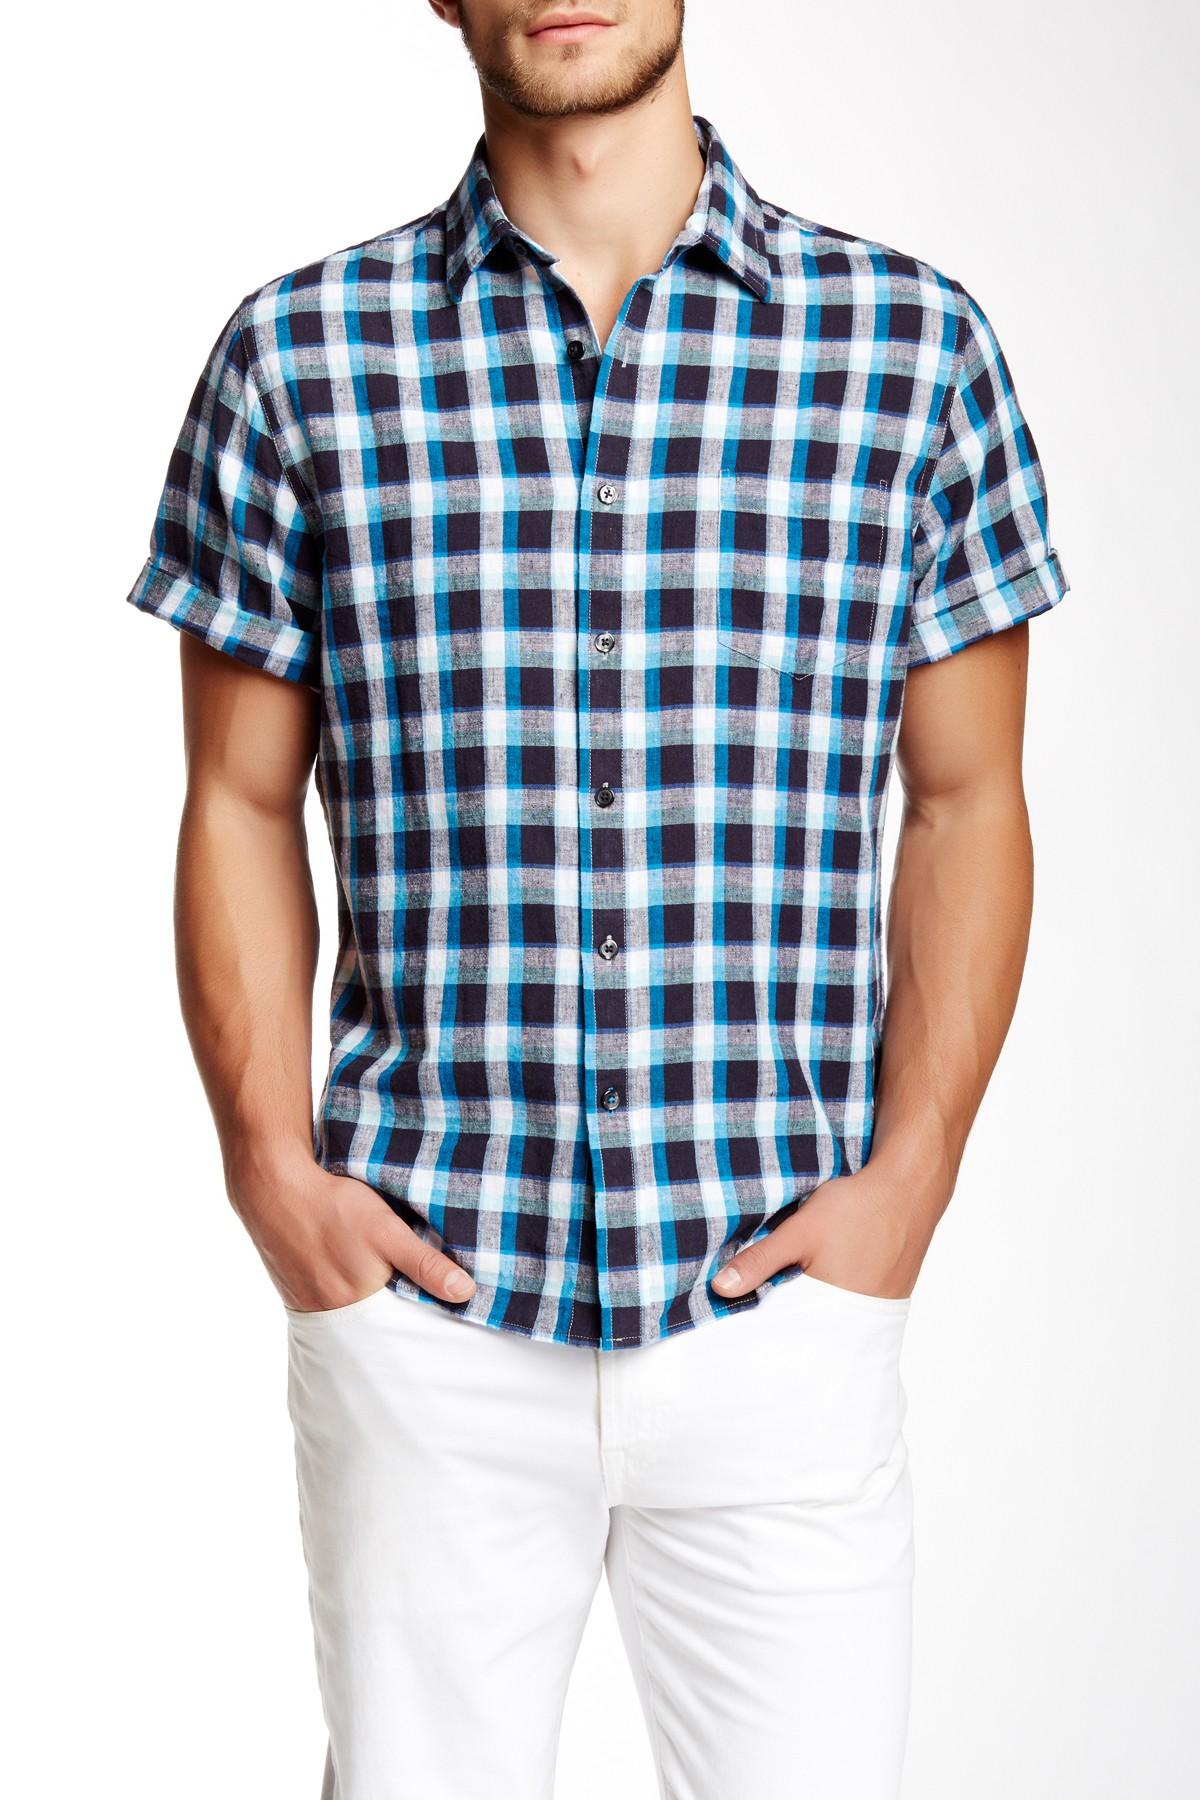 Tocco Toscano Plaid Short Sleeve Regular Fit Shirt In Blue